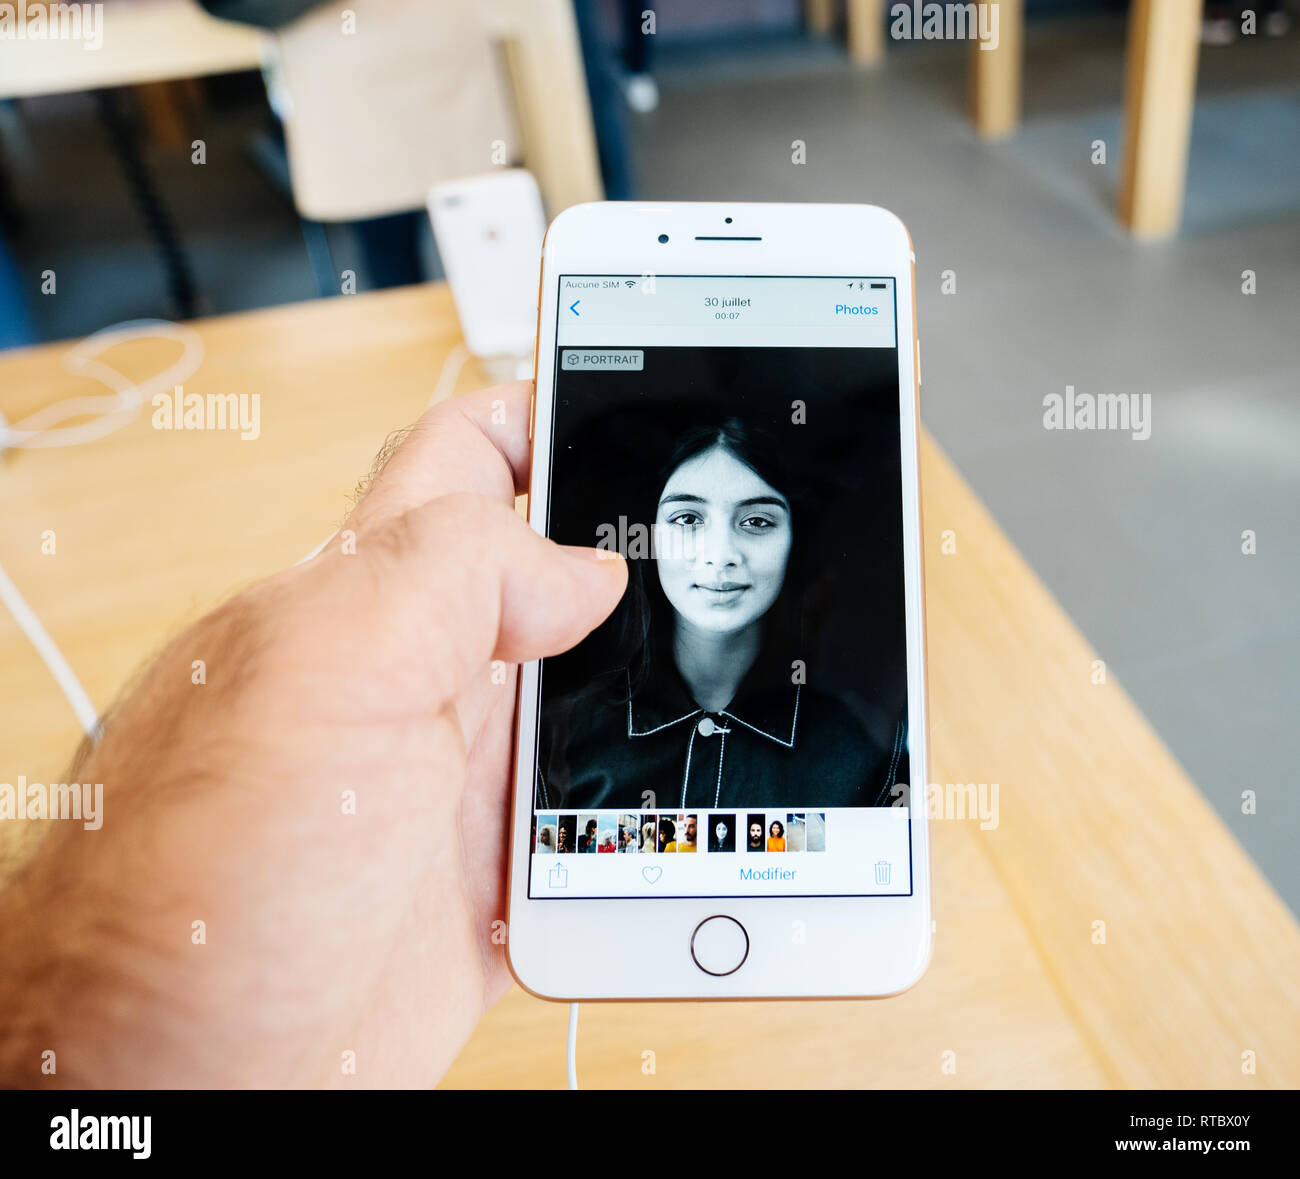 PARIS, FRANCE - SEP 22, 2017: New iPhone 8 and iPhone 8 Plus, as well the updated Apple Watch, Apple TV goes on sale today in Apple Store - point of view at new photos taken with 12 mpx camera  - Stock Image